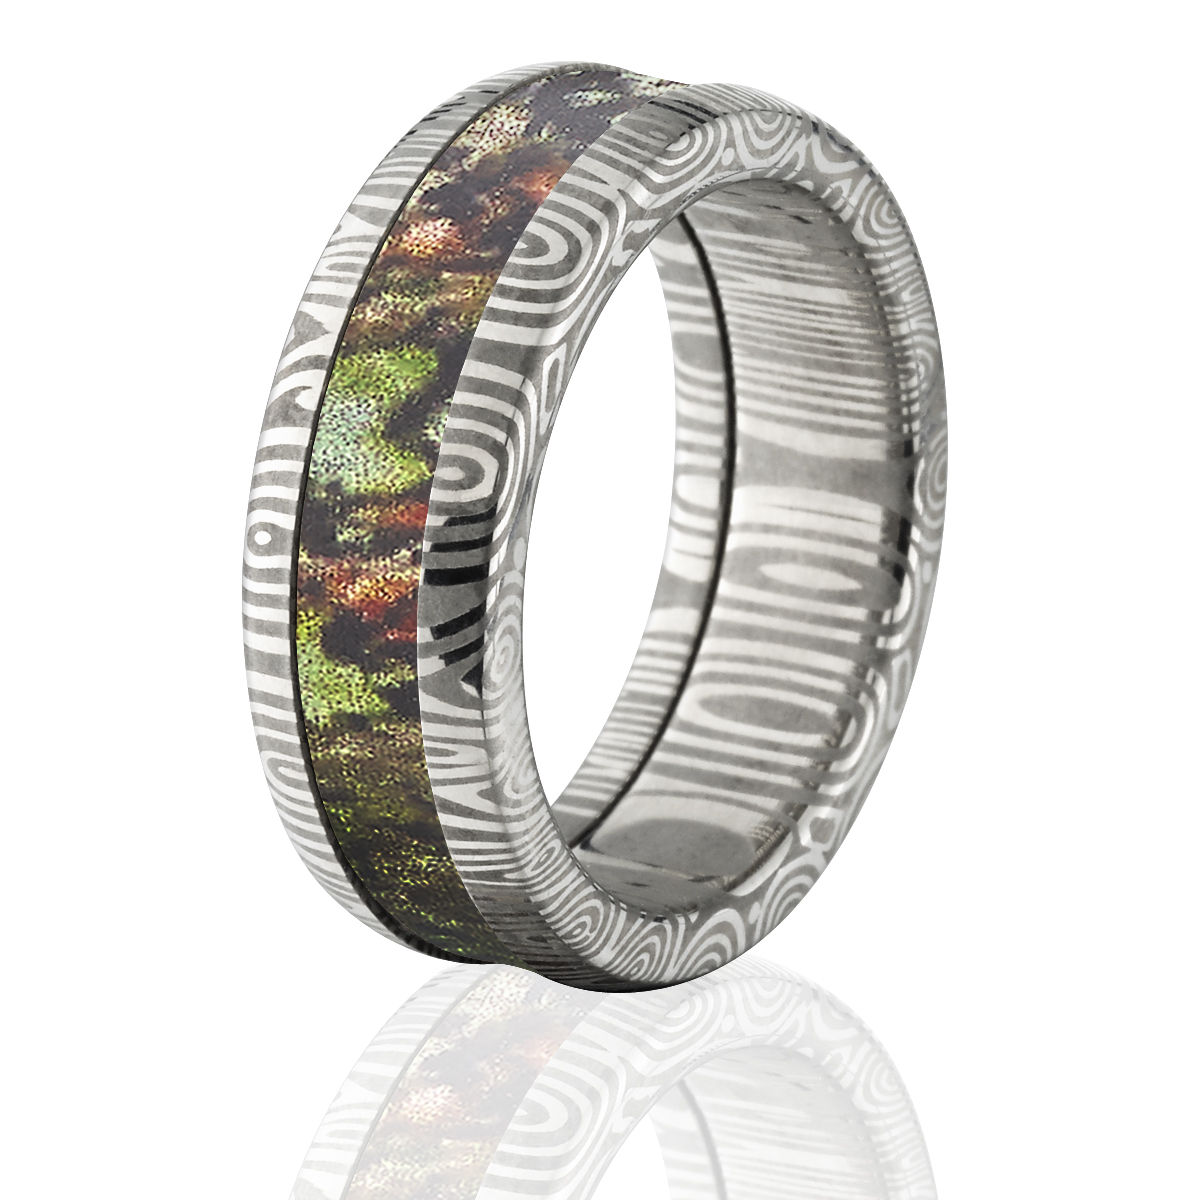 camo pinterest and pin wedding her for him rings weddings camuoflage